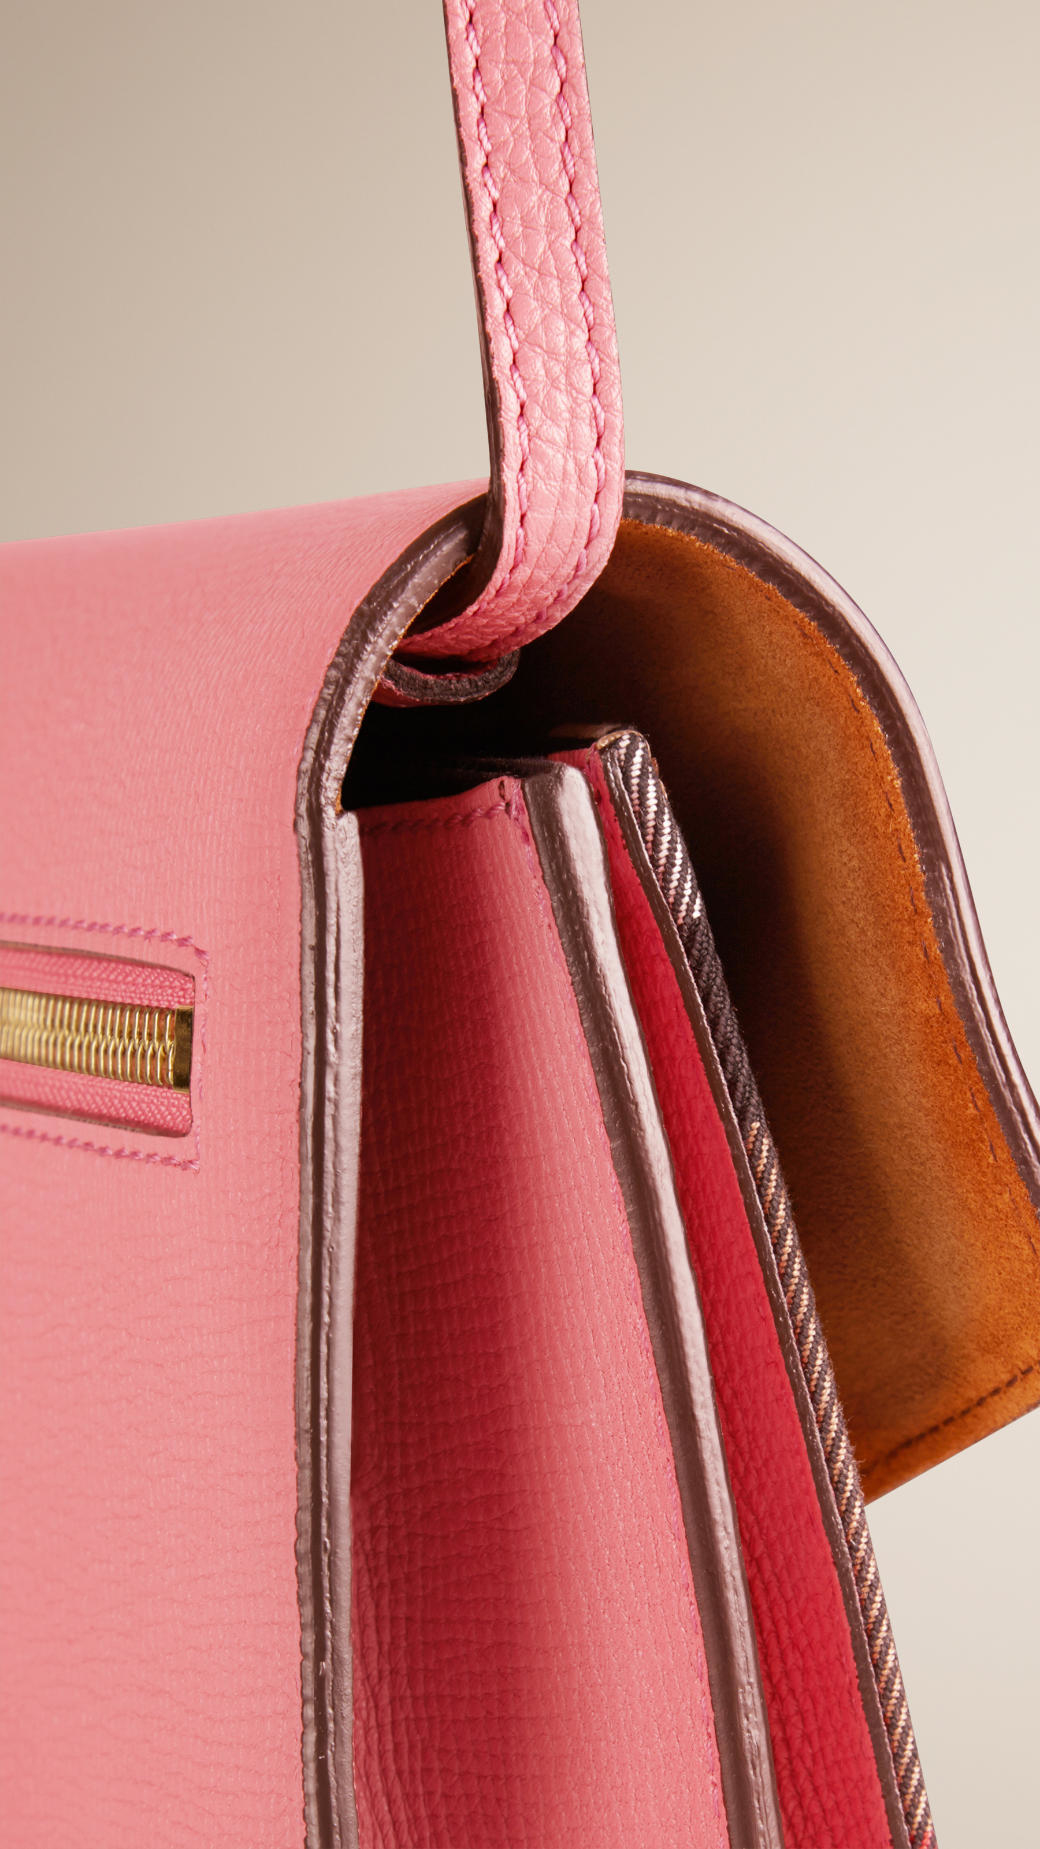 b14768249632 Lyst - Burberry Small House Check and Leather Cross-Body Bag in Pink